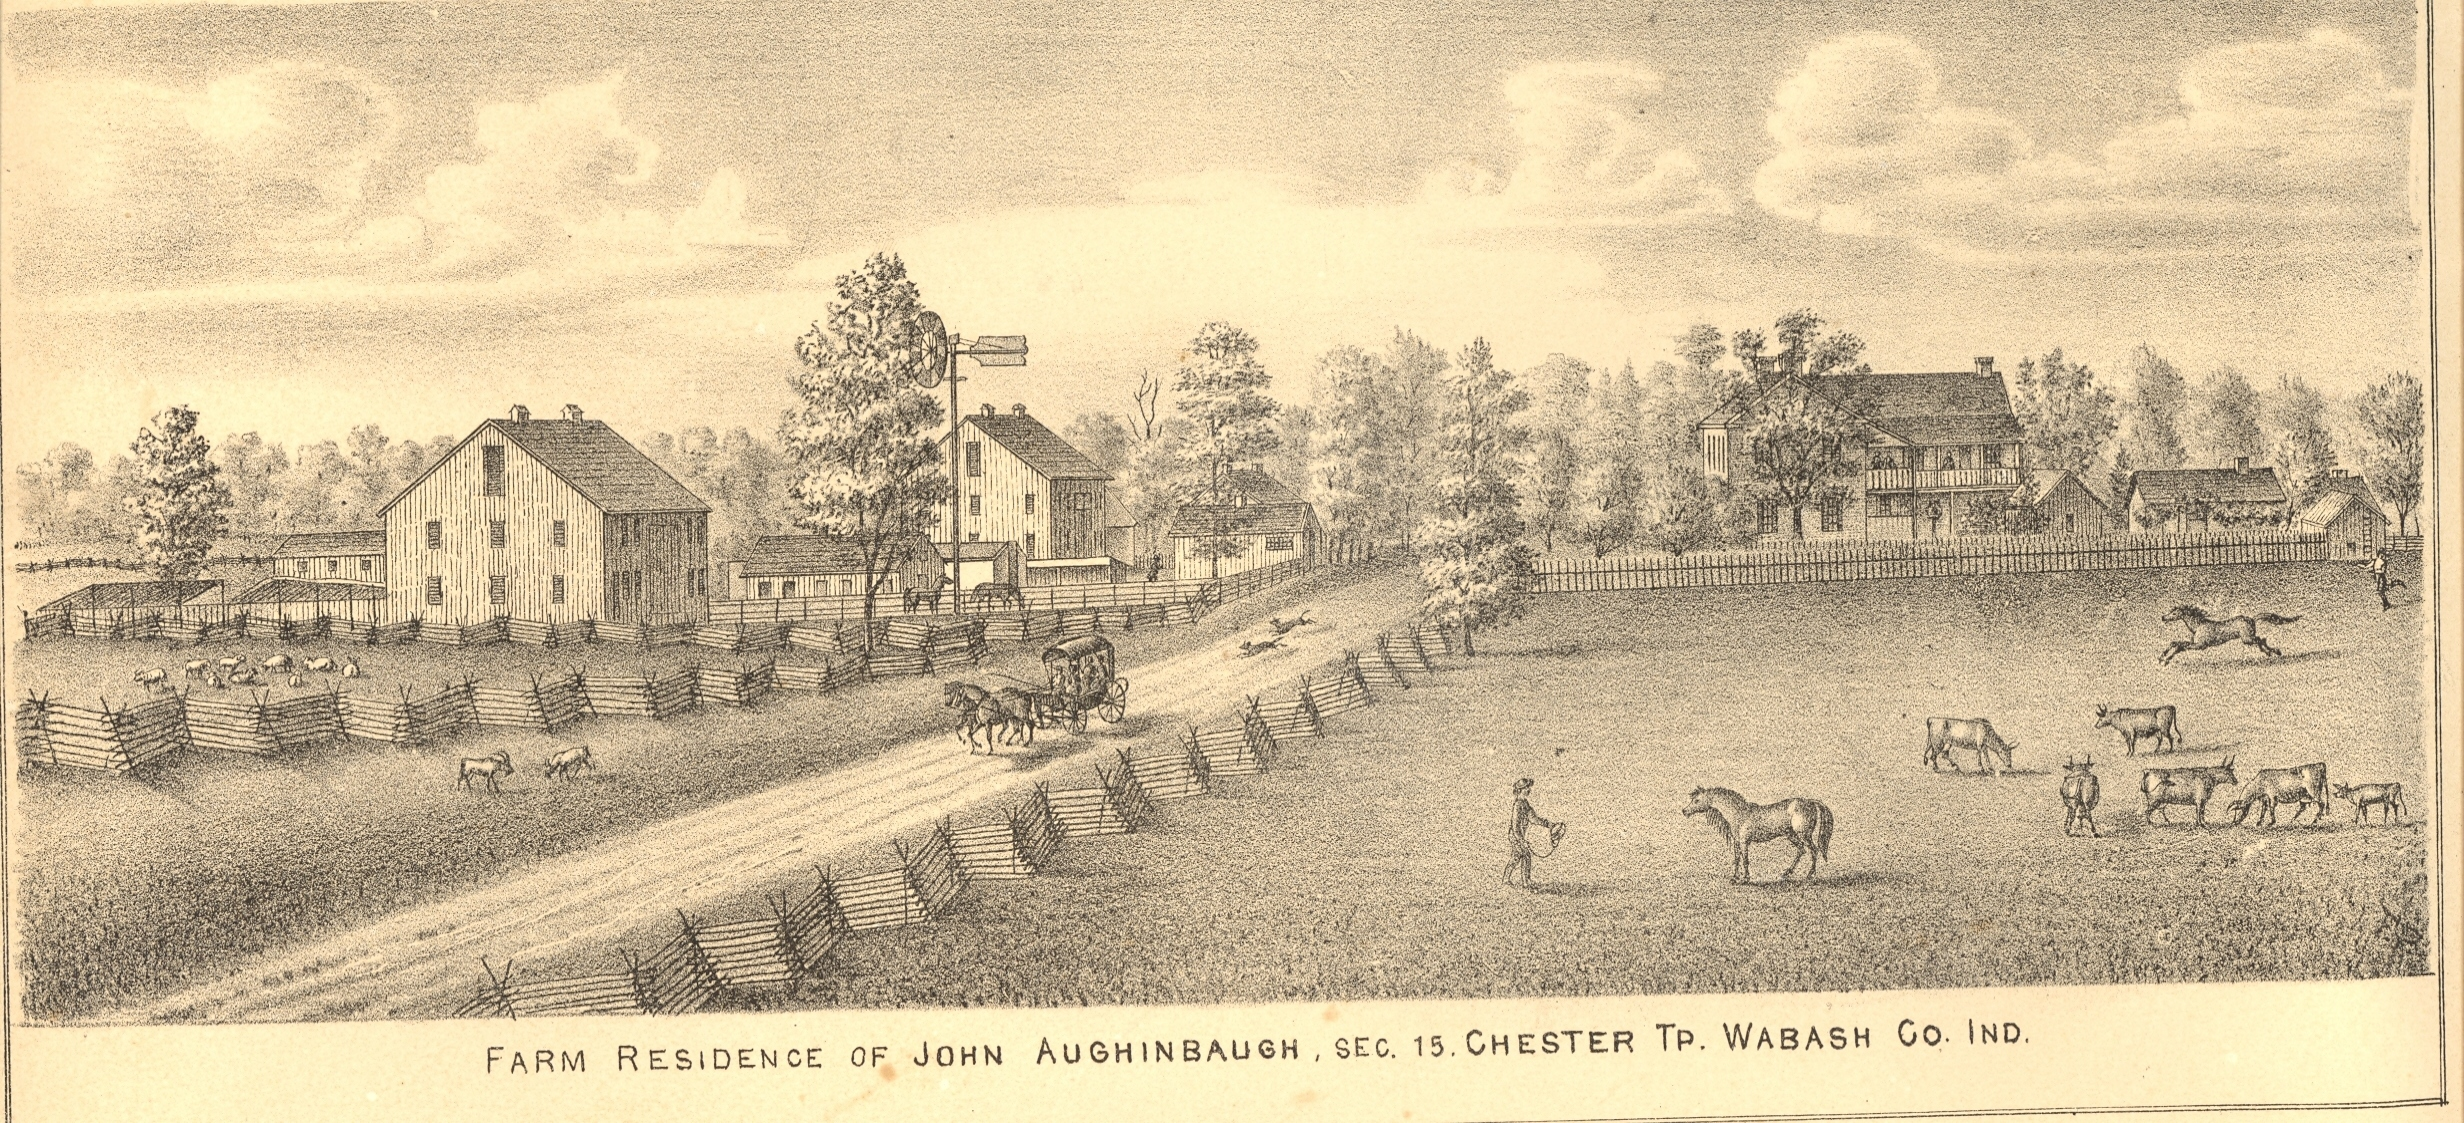 1875 Lithograph View, John Aughinbaugh Farm, Chester Twp.